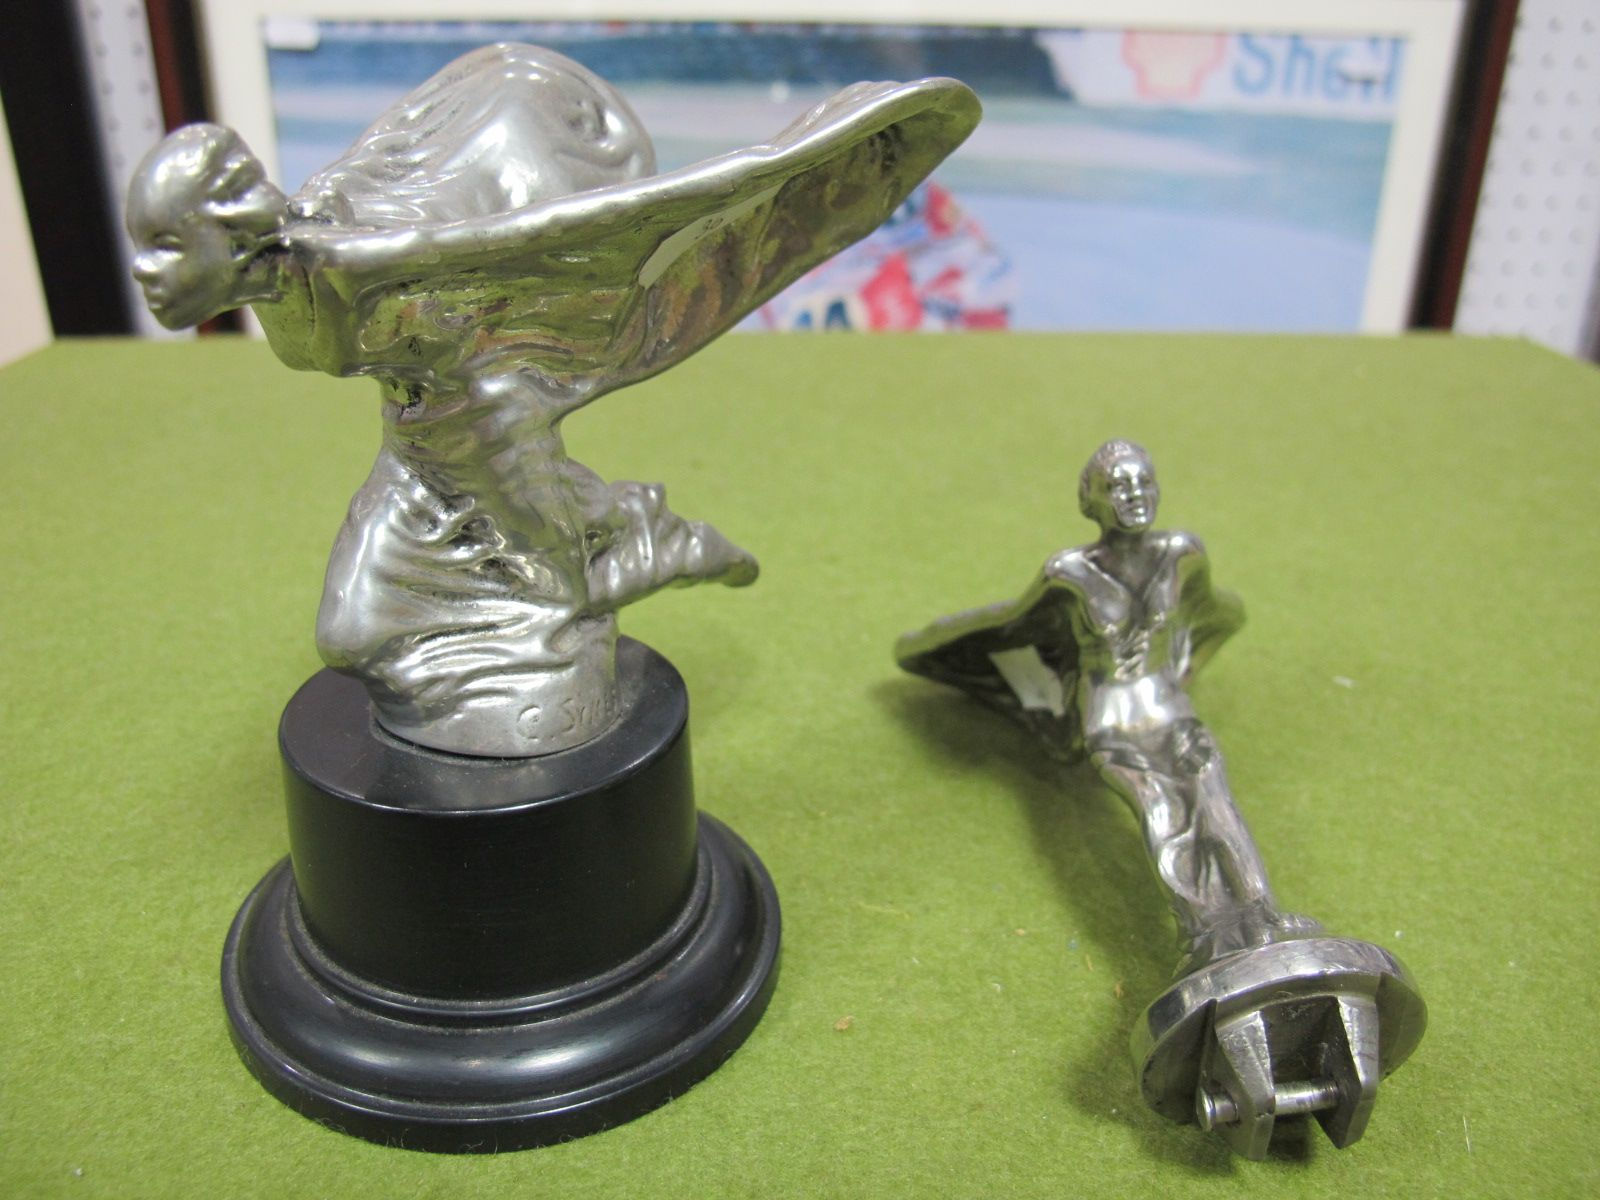 Lot 36 - A Rolls Royce Spirit of Ecstasy Flying Lady Car Mascot, inscribed at base C. Sykes 25.1.34 mounted